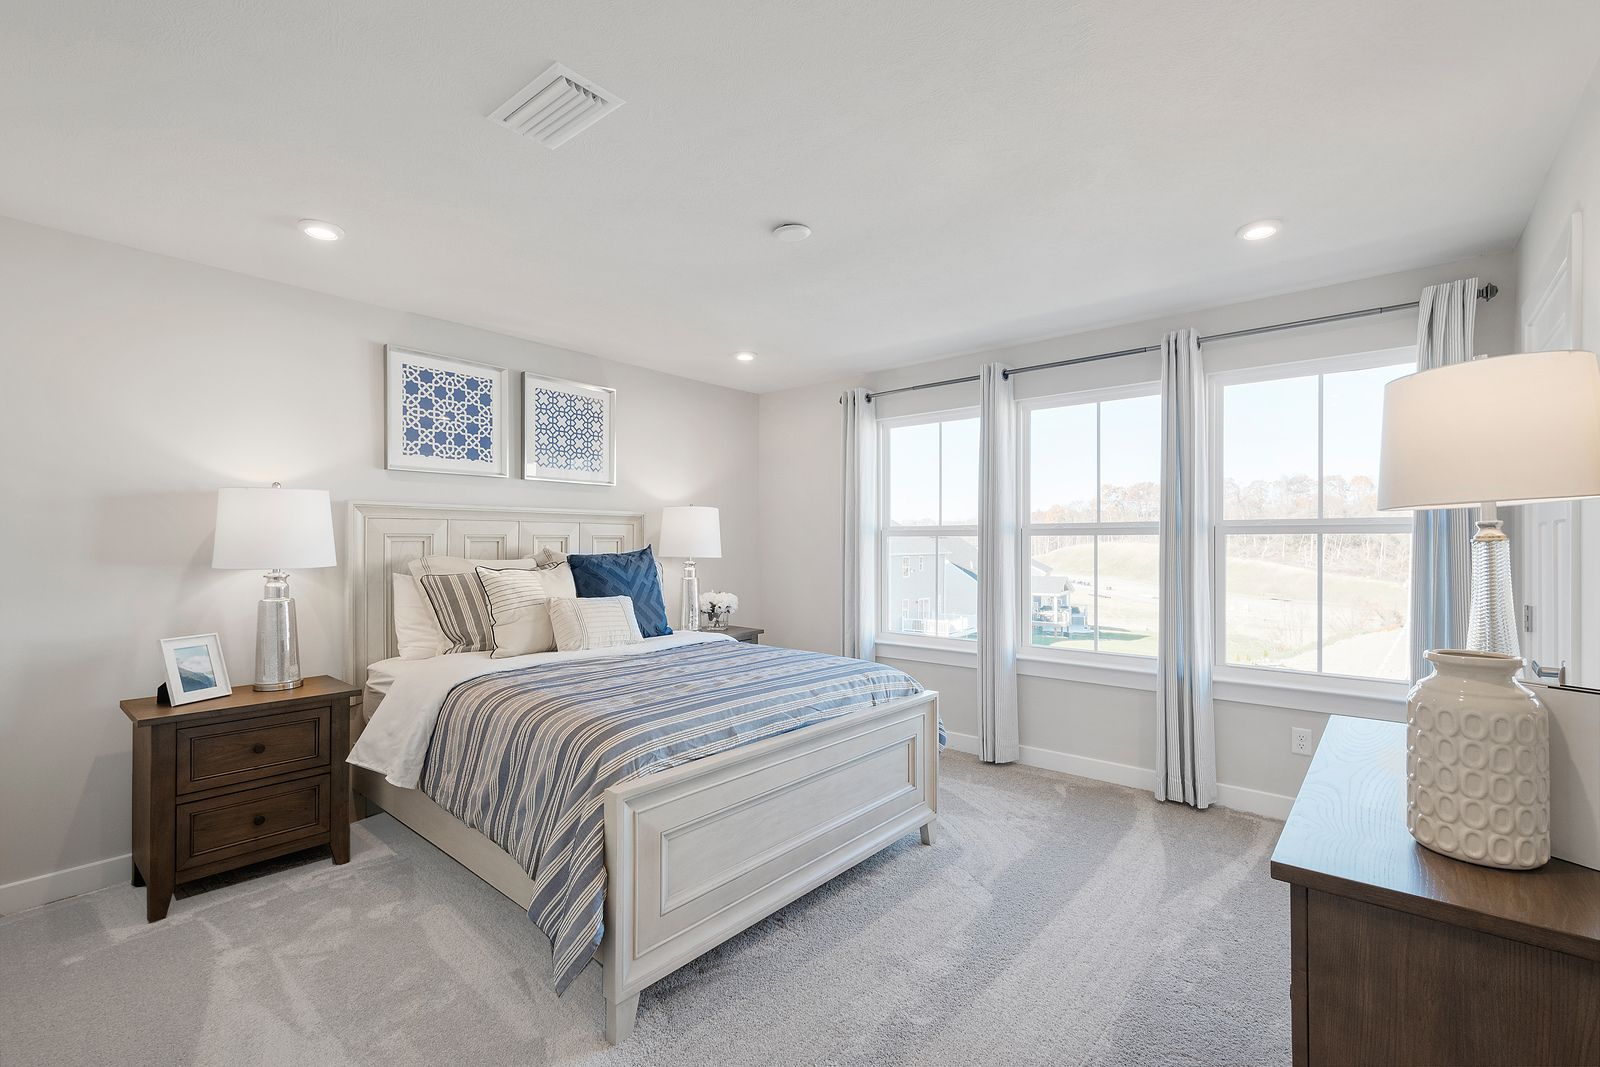 Bedroom featured in the Columbia By Ryan Homes in Charlotte, NC